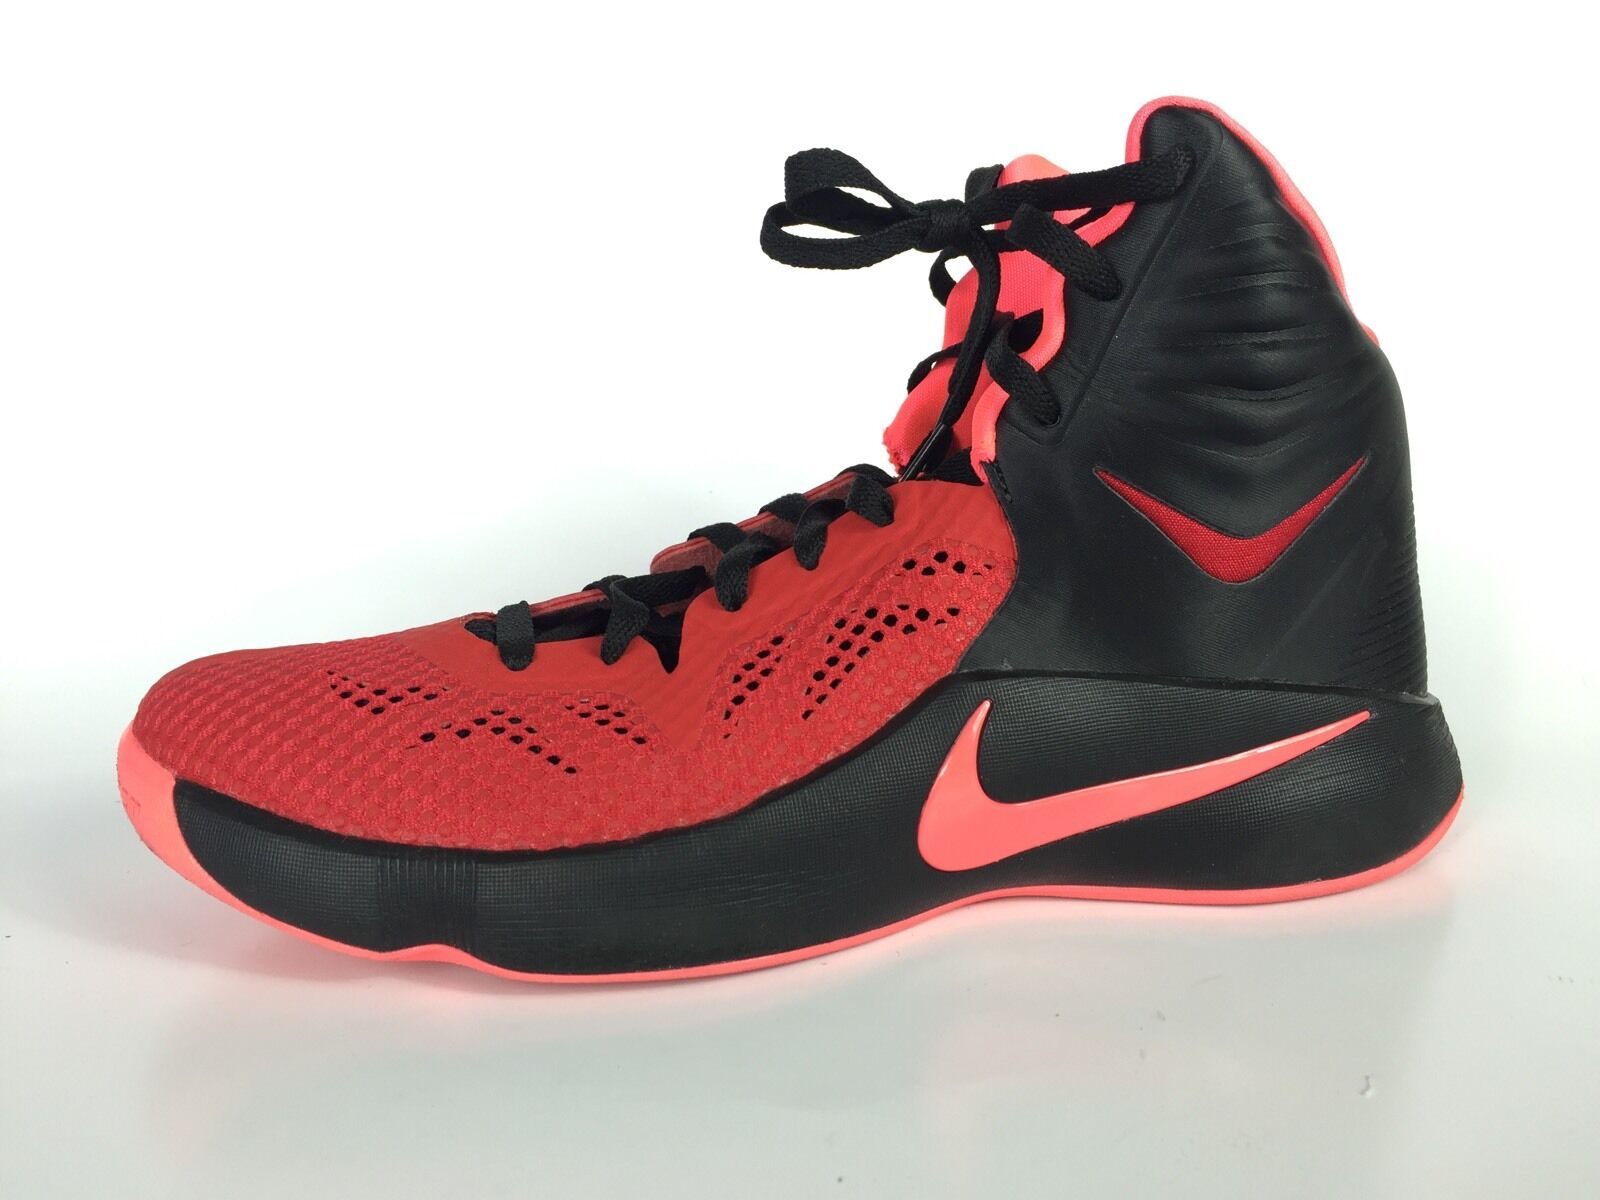 Nike Zoom Hyperfuse 2018 Men's Black And Red Sneakers Comfortable